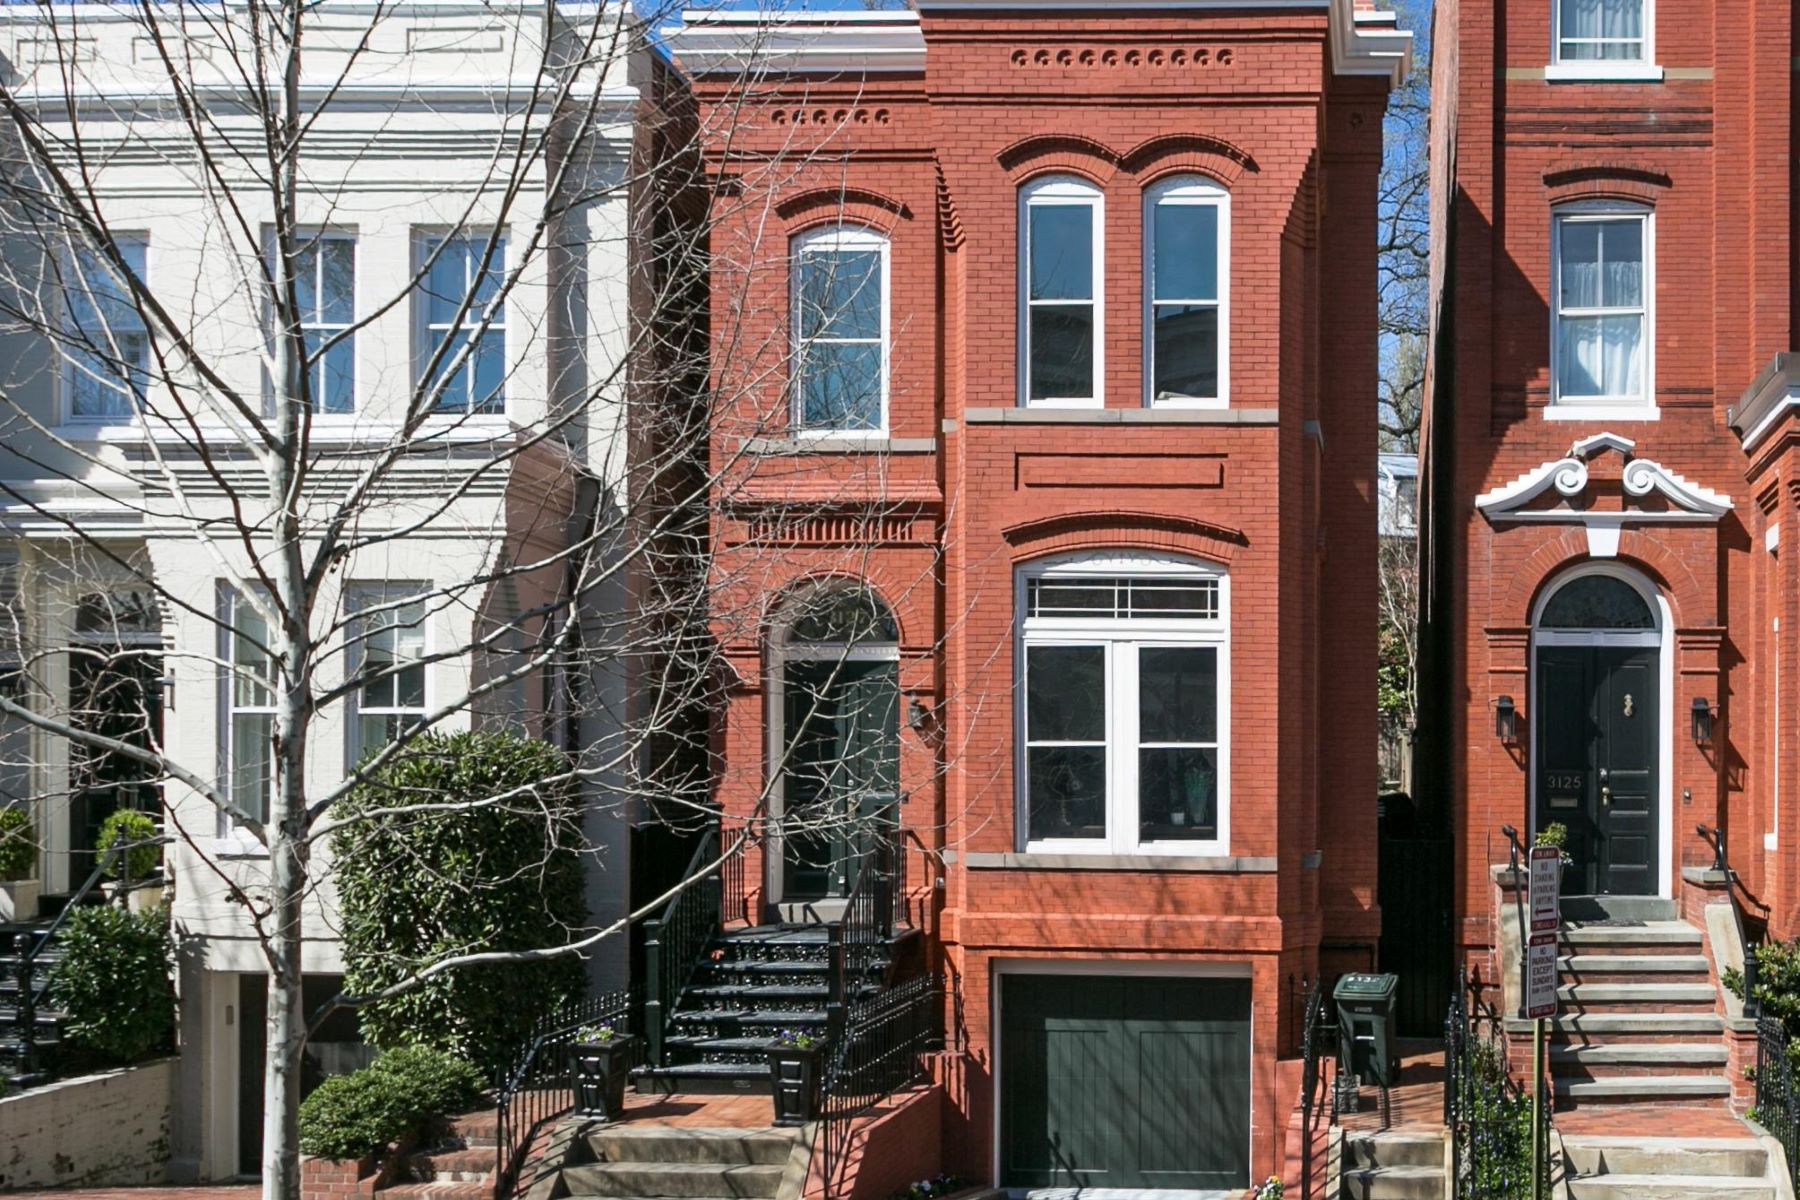 Property for Sale at 3127 P St NW Washington, District Of Columbia 20007 United States